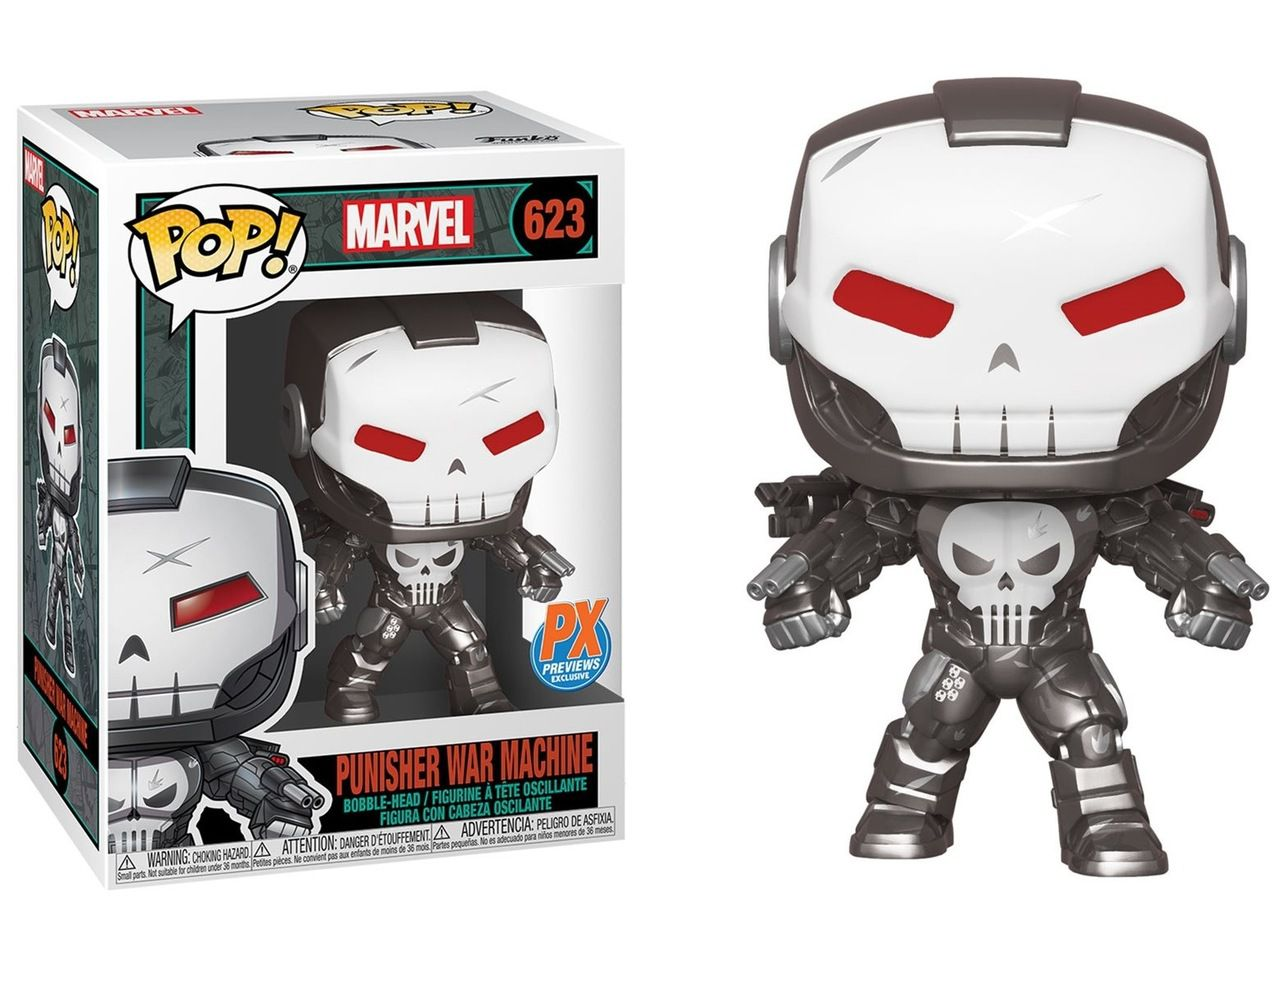 PRÉ VENDA: Funko Pop! Justiceiro Máquina de Combate (Punisher War Machine): Punisher War Machine (Exclusivo) #623 - Funko